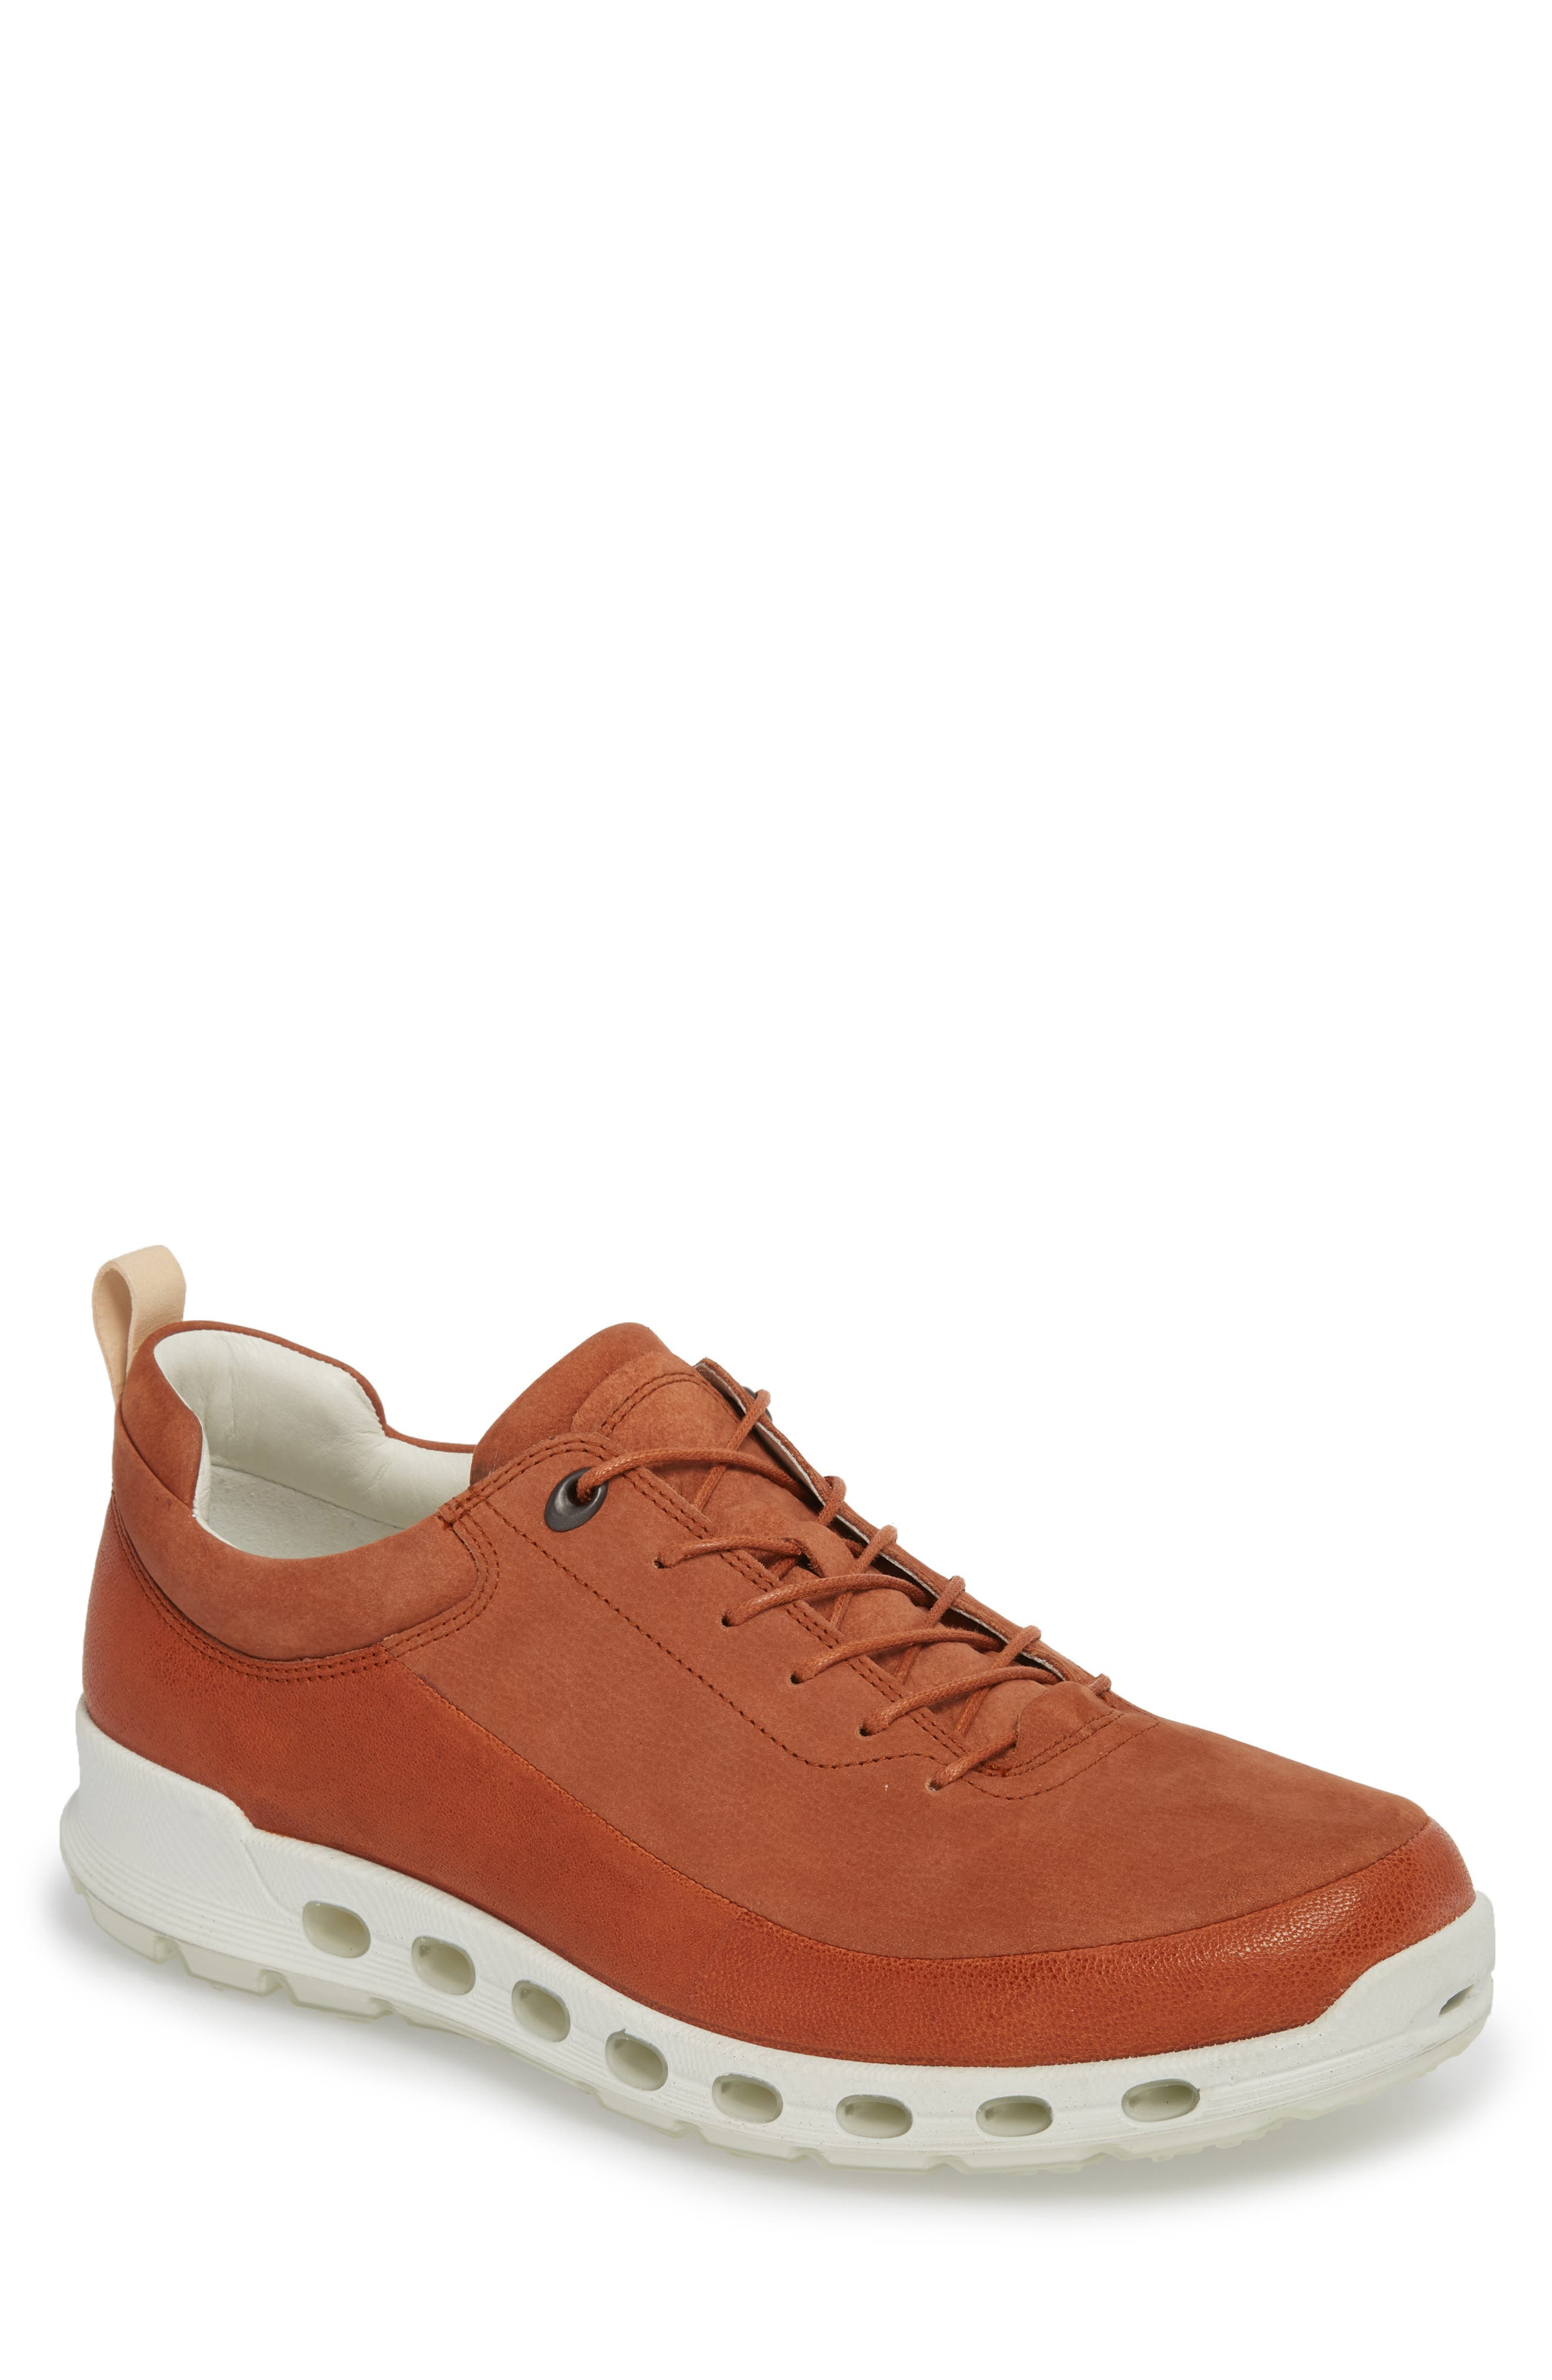 Cool 2.0 Gore-Tex<sup>®</sup> Sneaker,                         Main,                         color, Brandy Leather